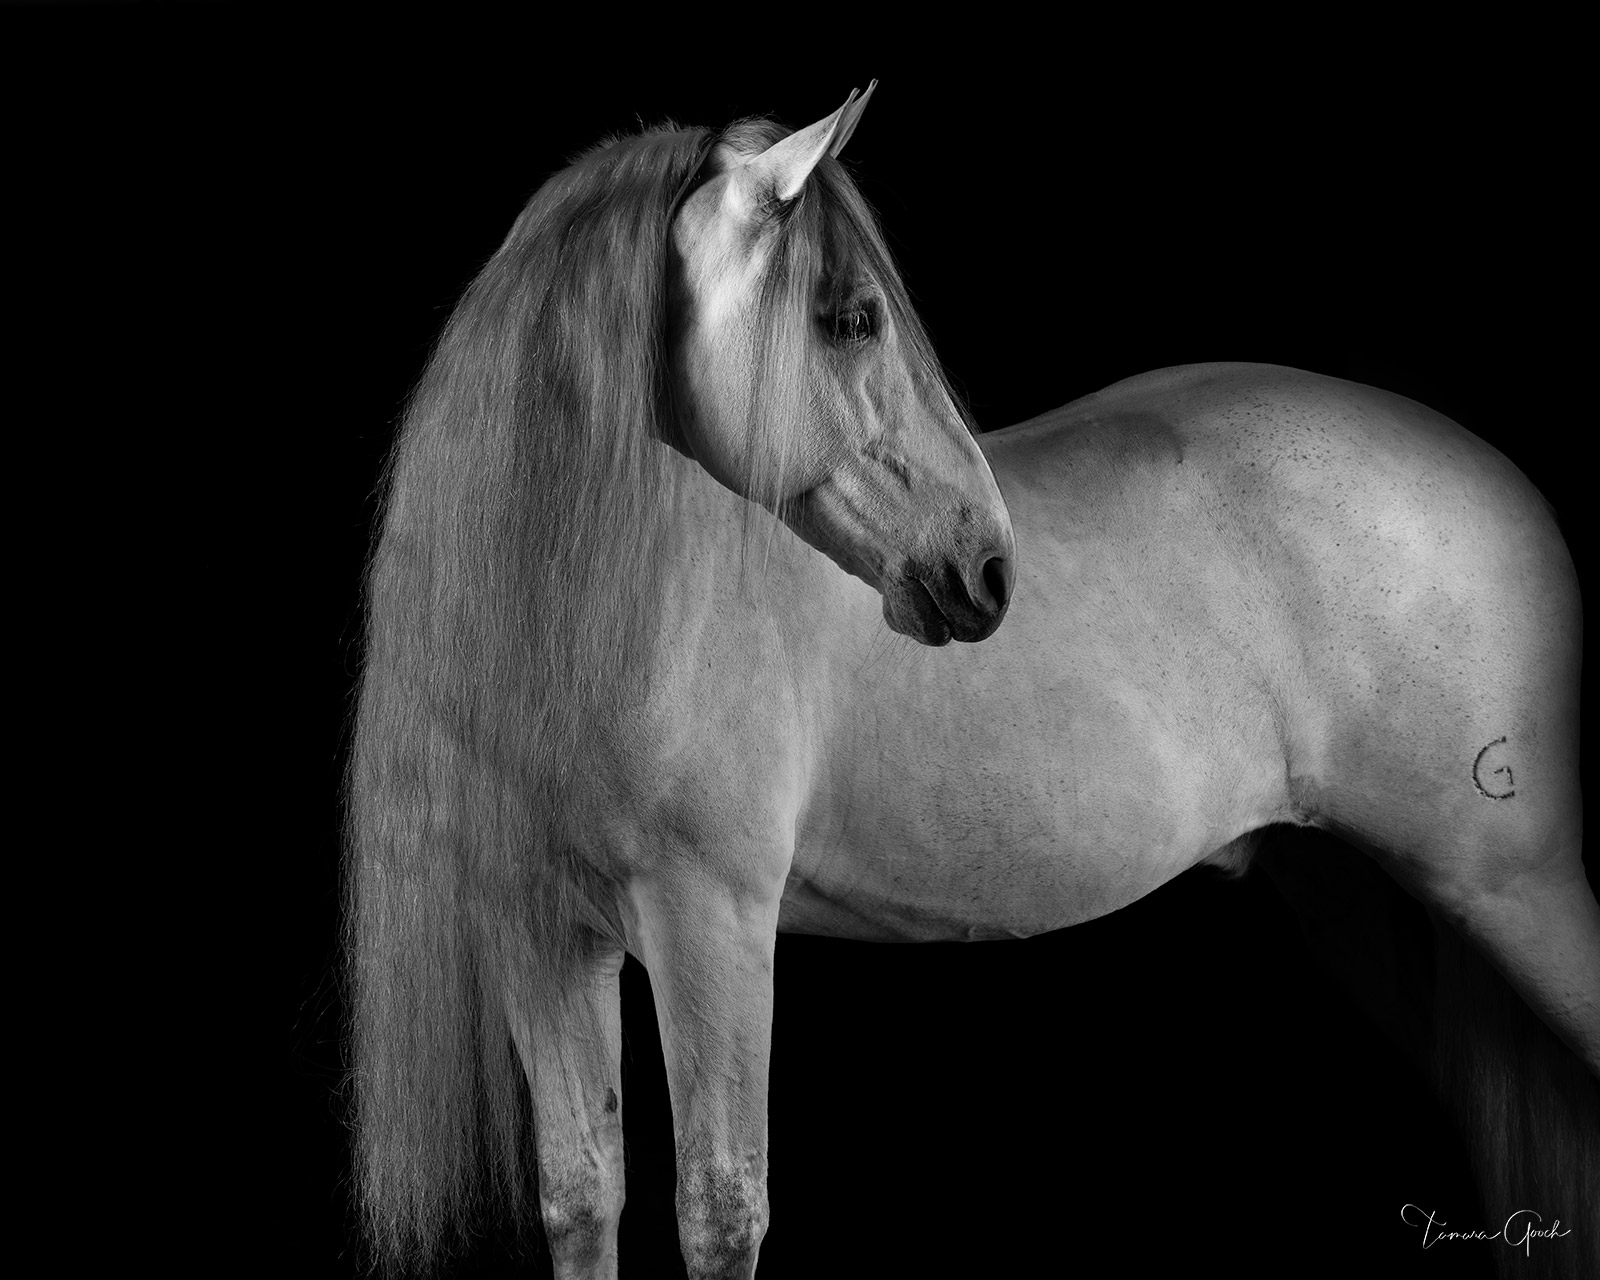 A photograph of a Andalusian horse with a very long mane done in black and white.